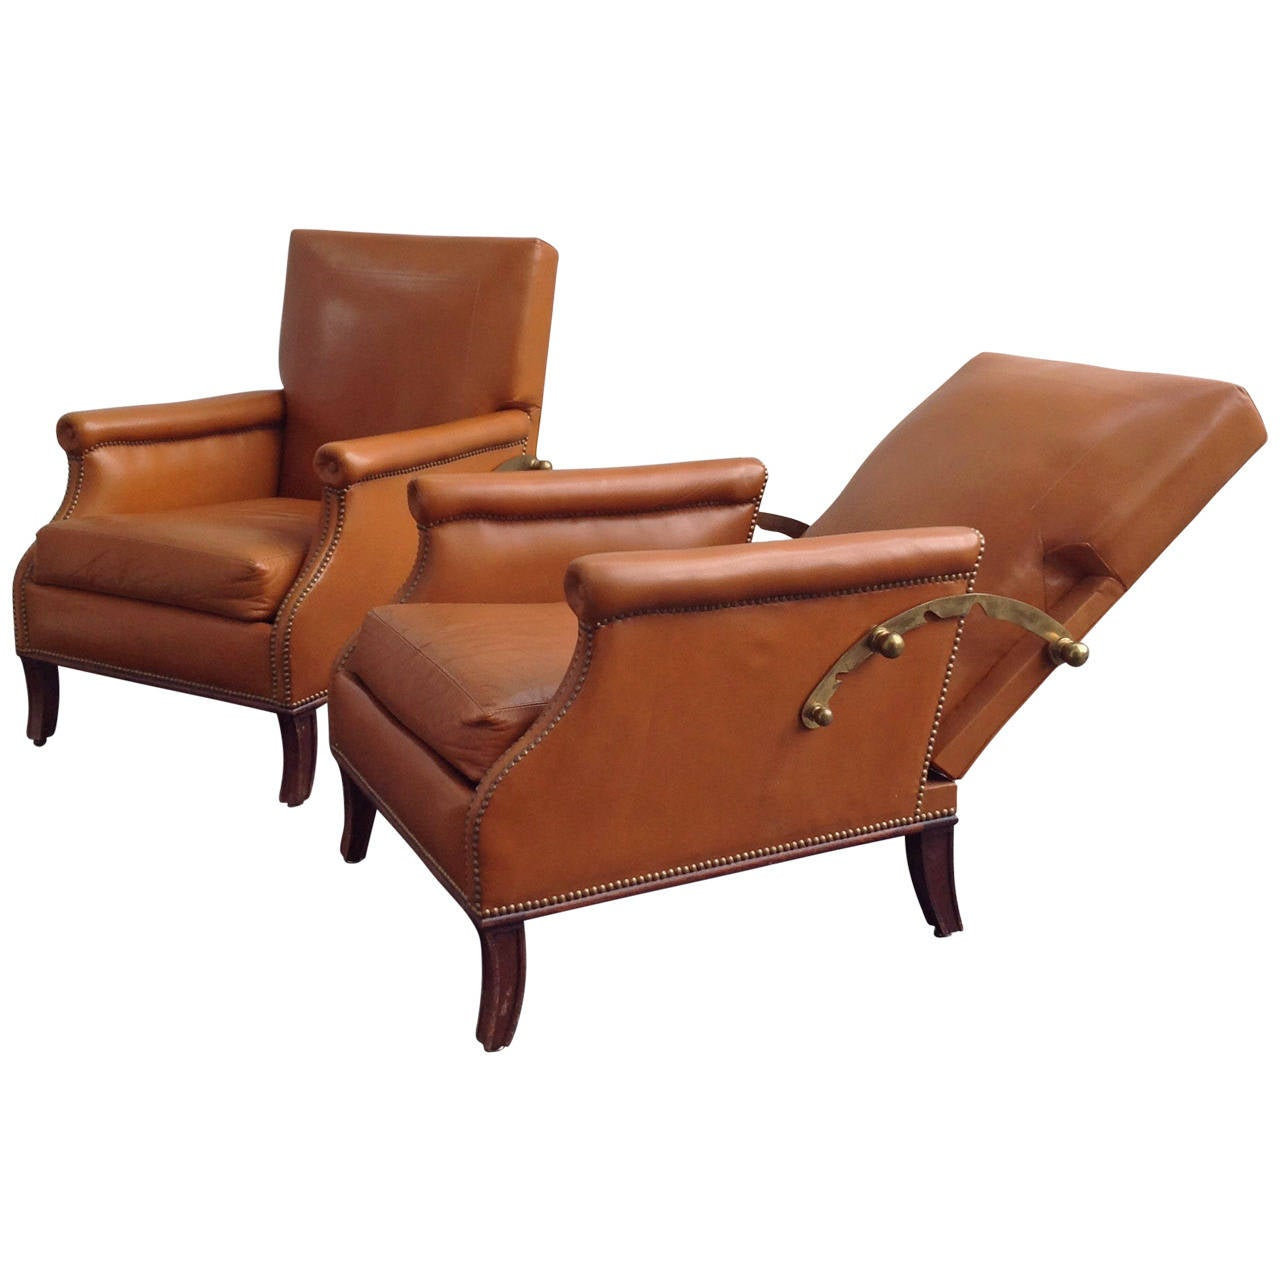 Leather sofa by poltrona frau at 1stdibs - High Quality Lounge Chairs By Poltrona Frau In Original Leather Anno 1960 1